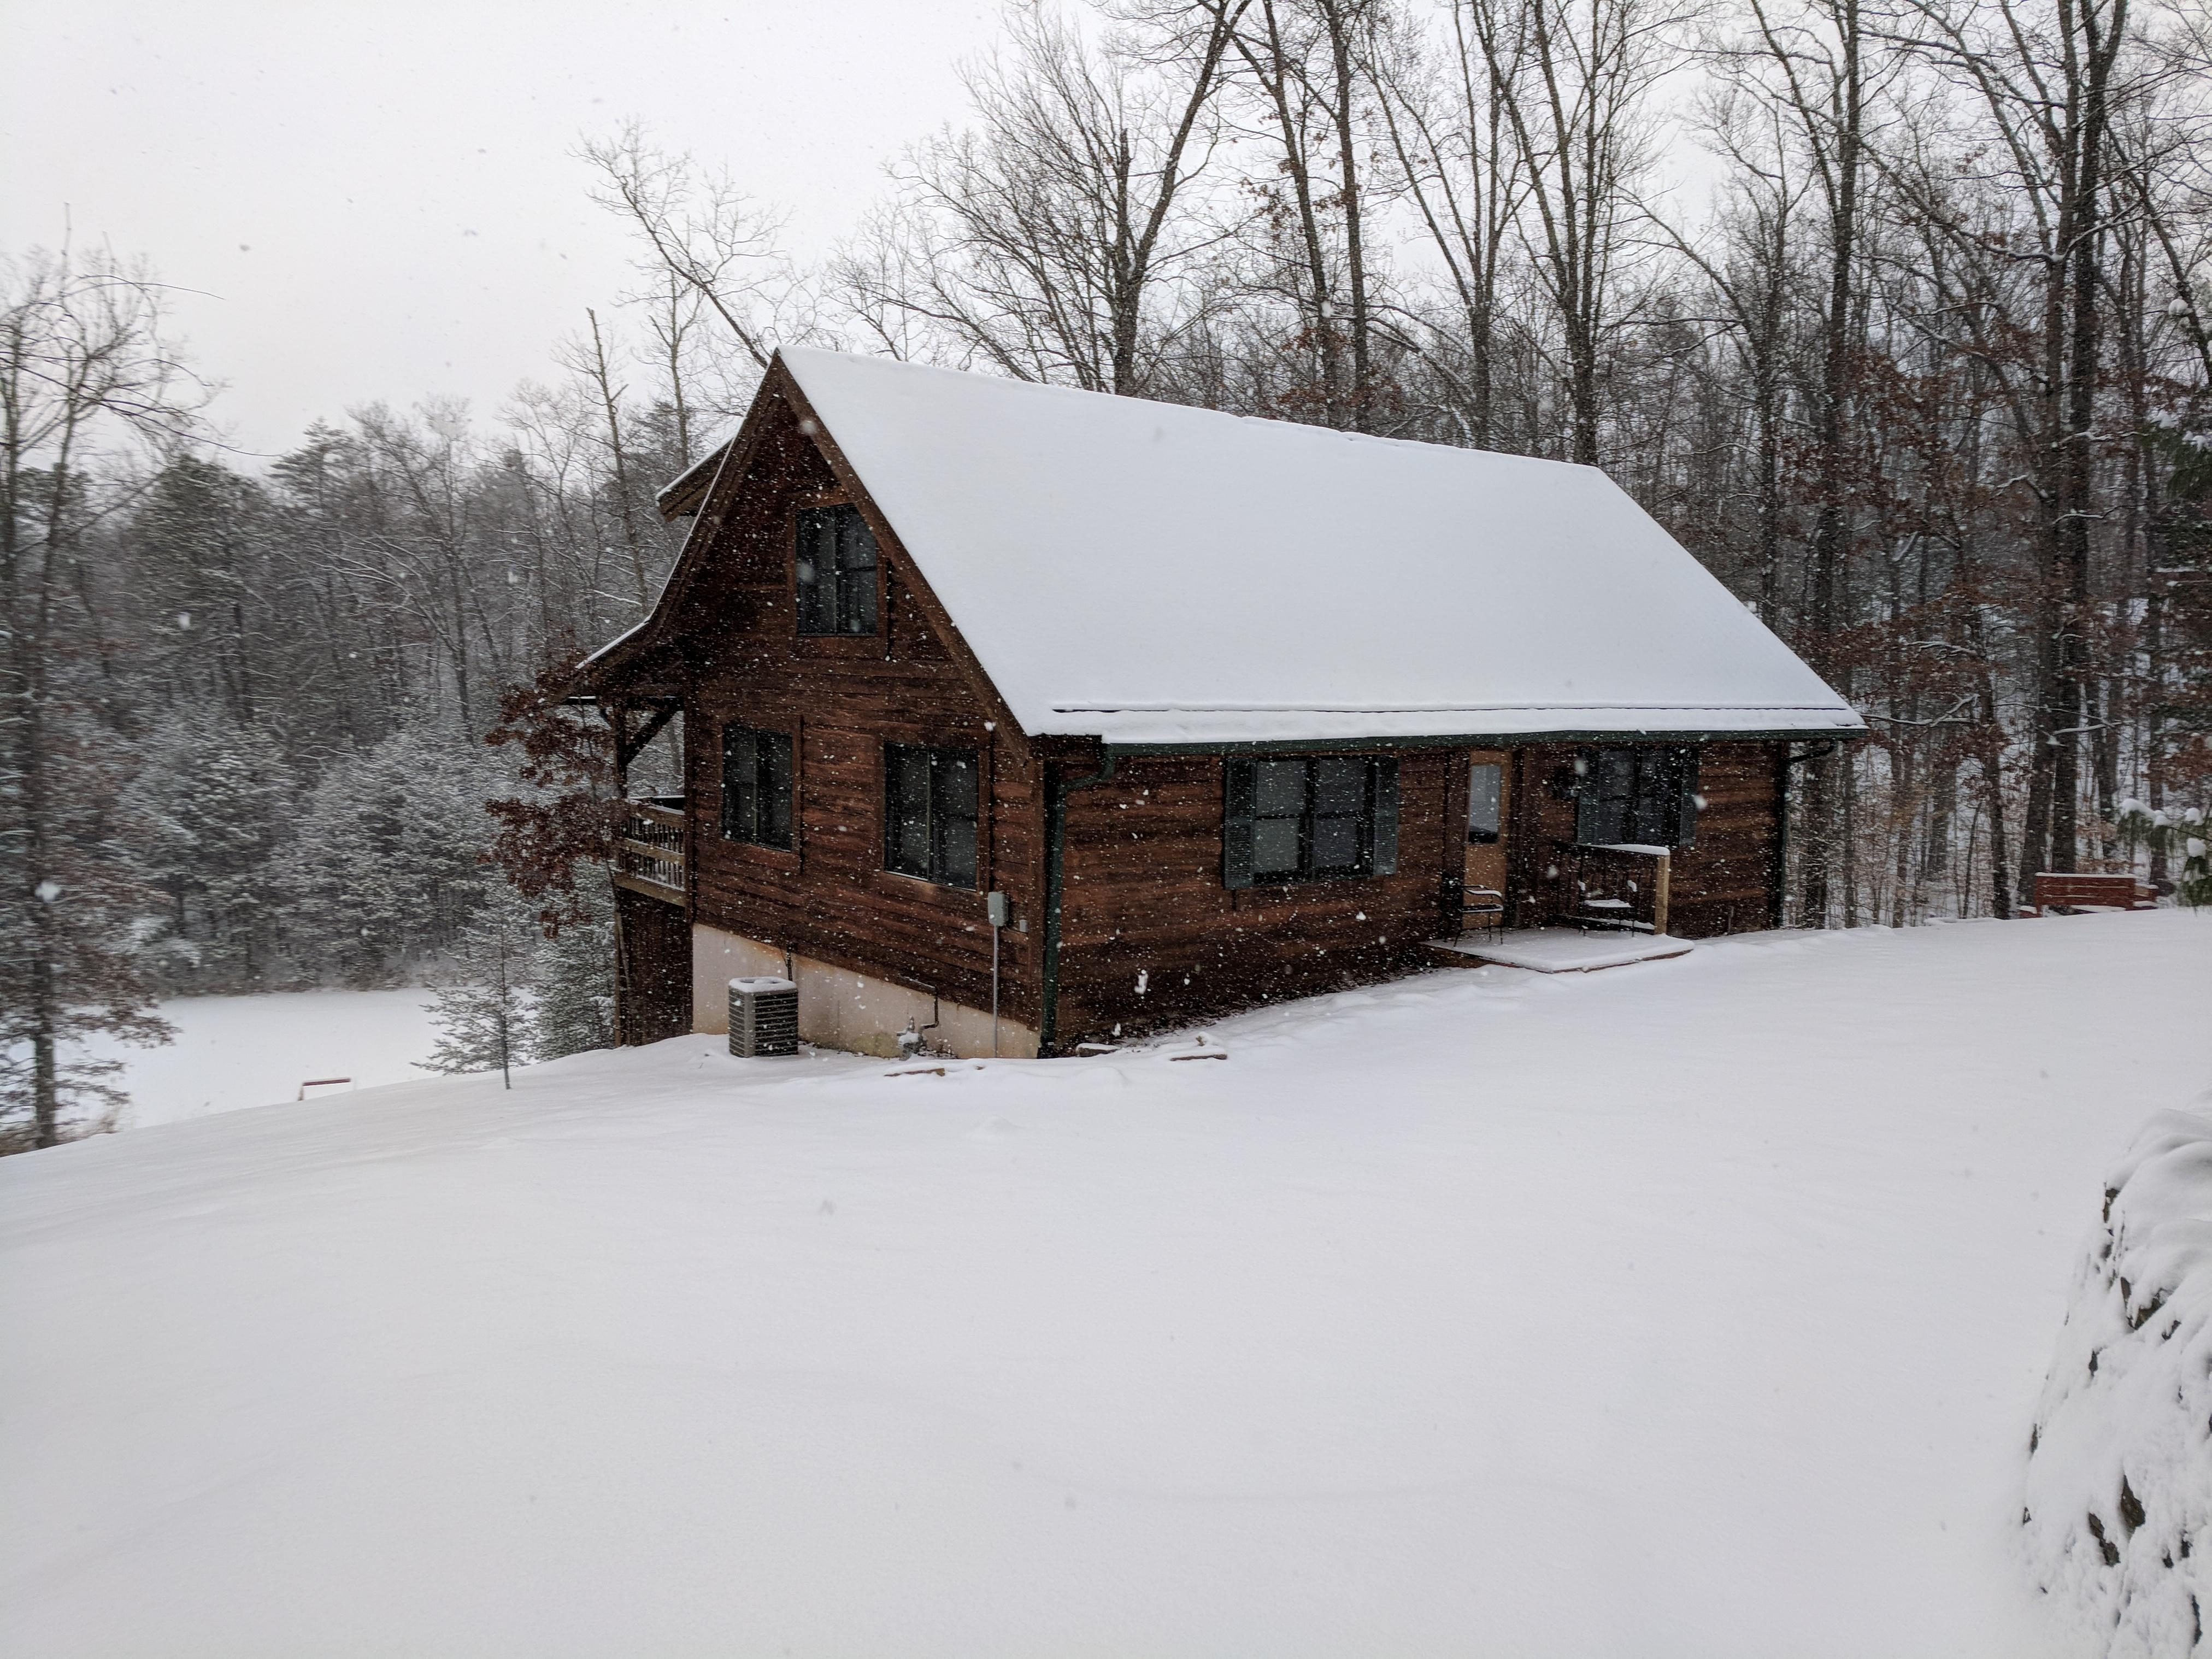 annes winter anne cabins s rentals vacation vista details cabin property scenic grande